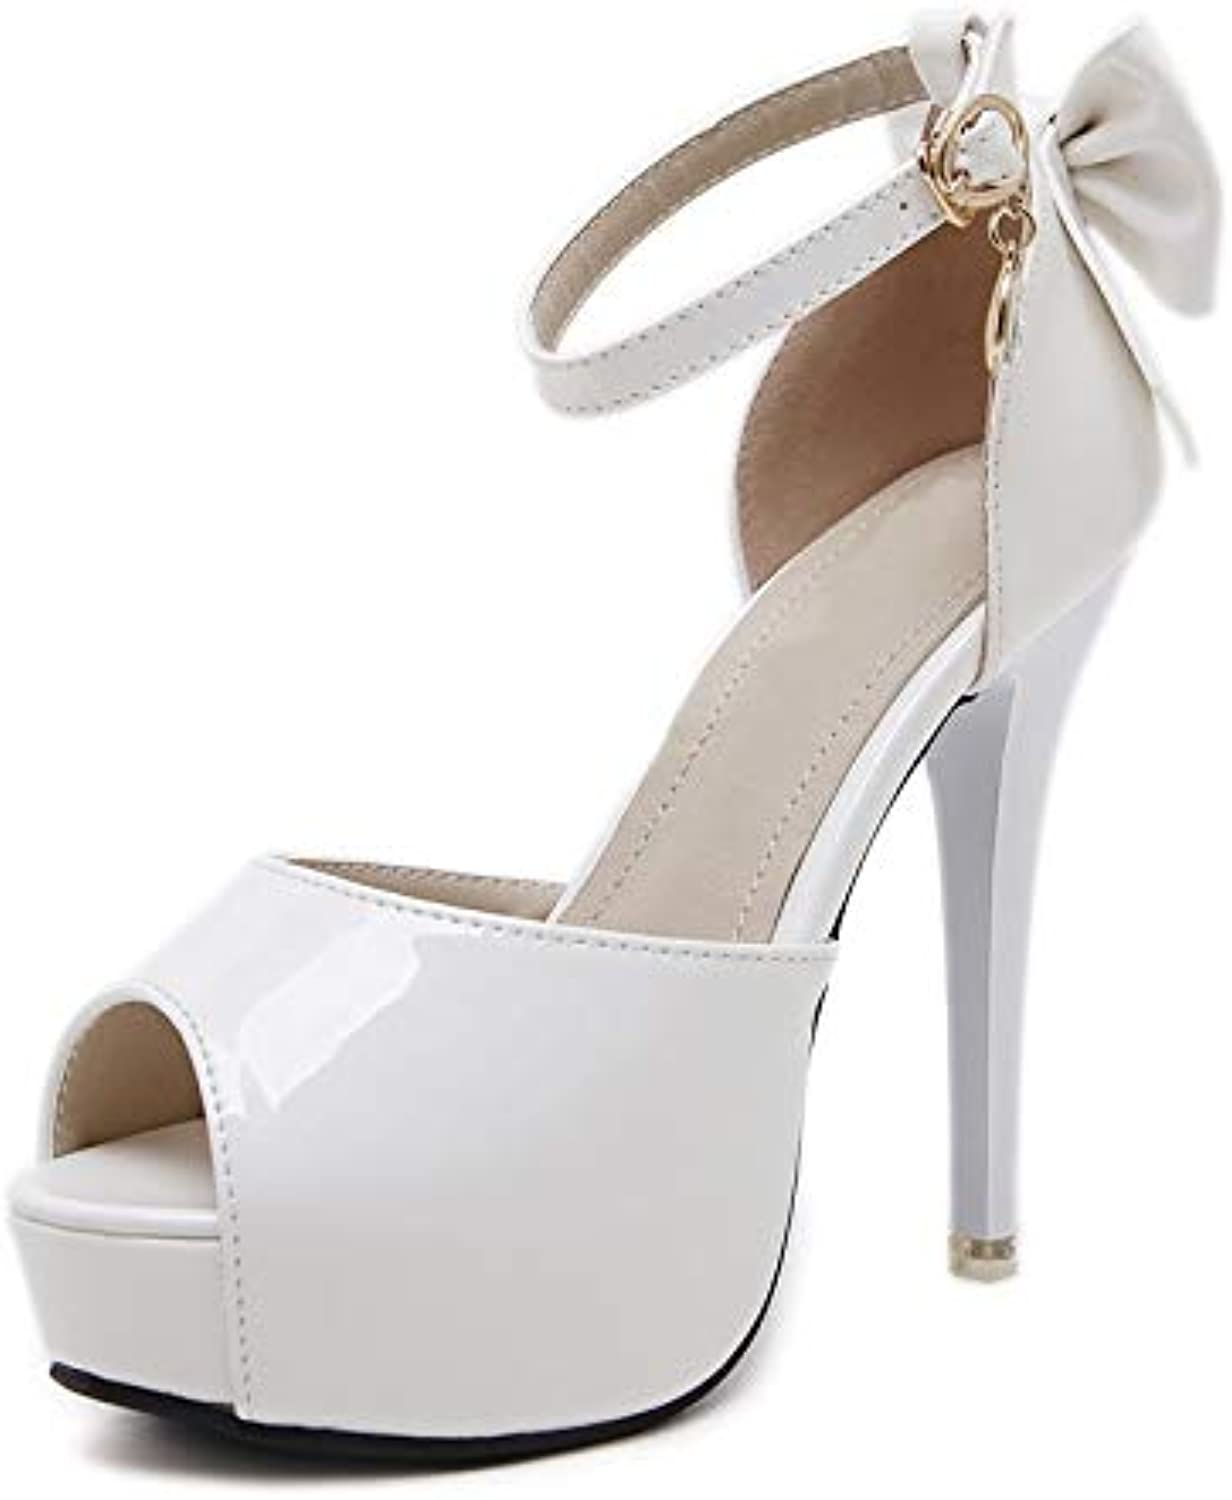 KCatsy Women's Peep Toe Platform Sandals Slim Party High Heels with Bow